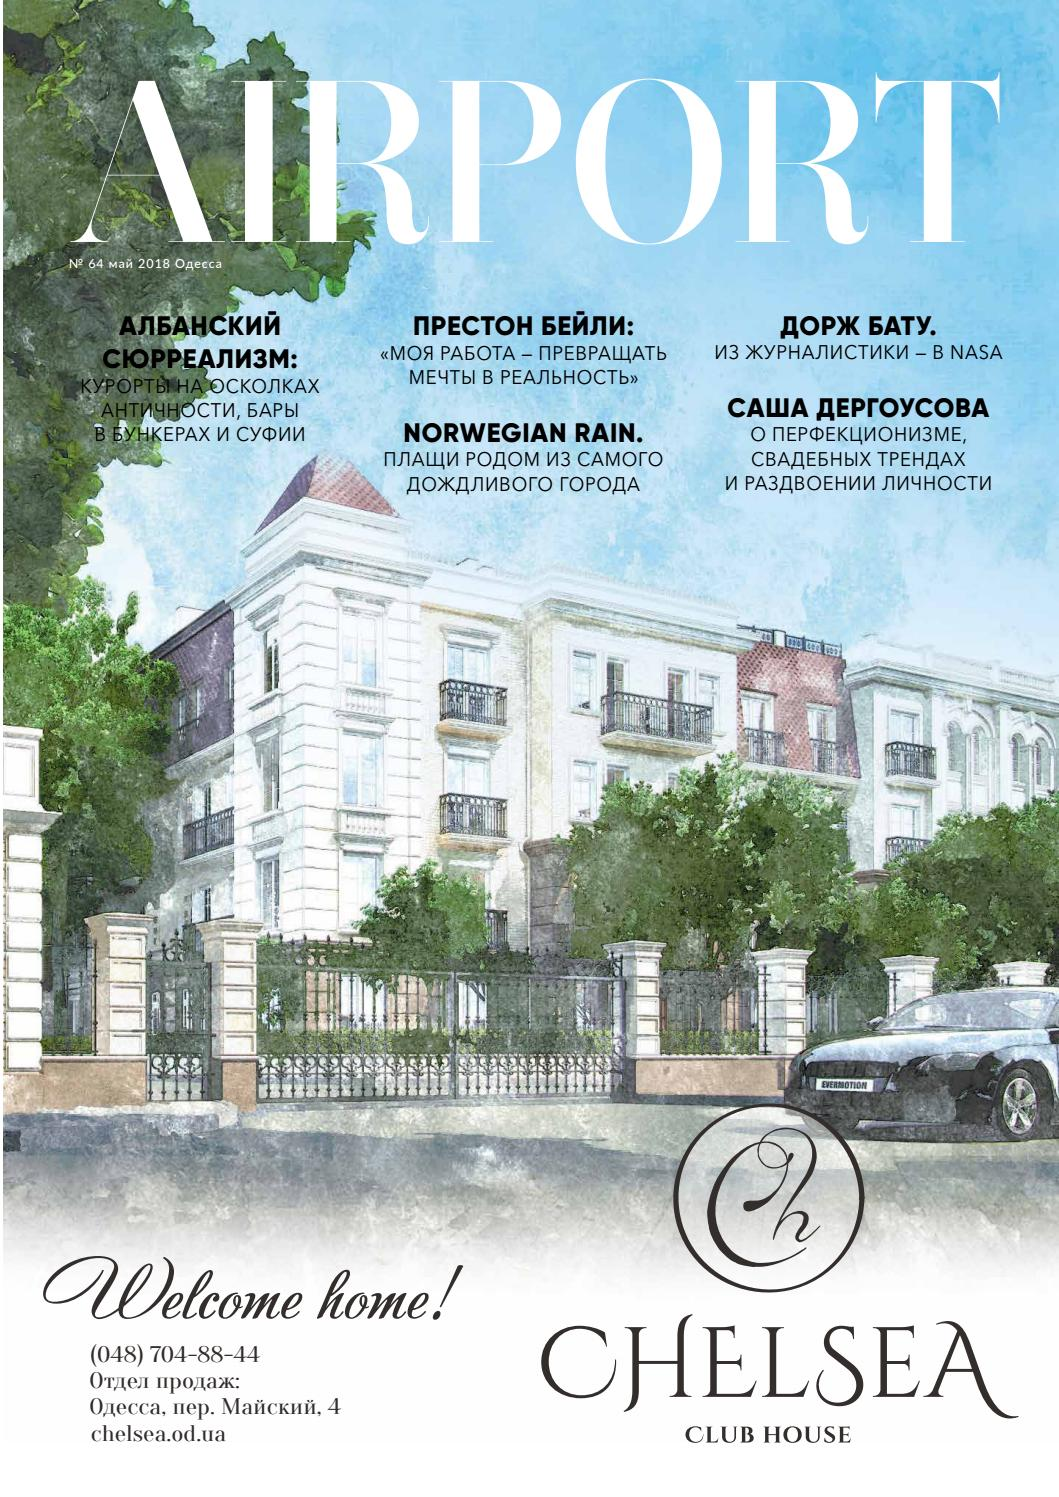 Salon De Jardin Promo Best Of May 18 by Airport Magazine Odessa issuu